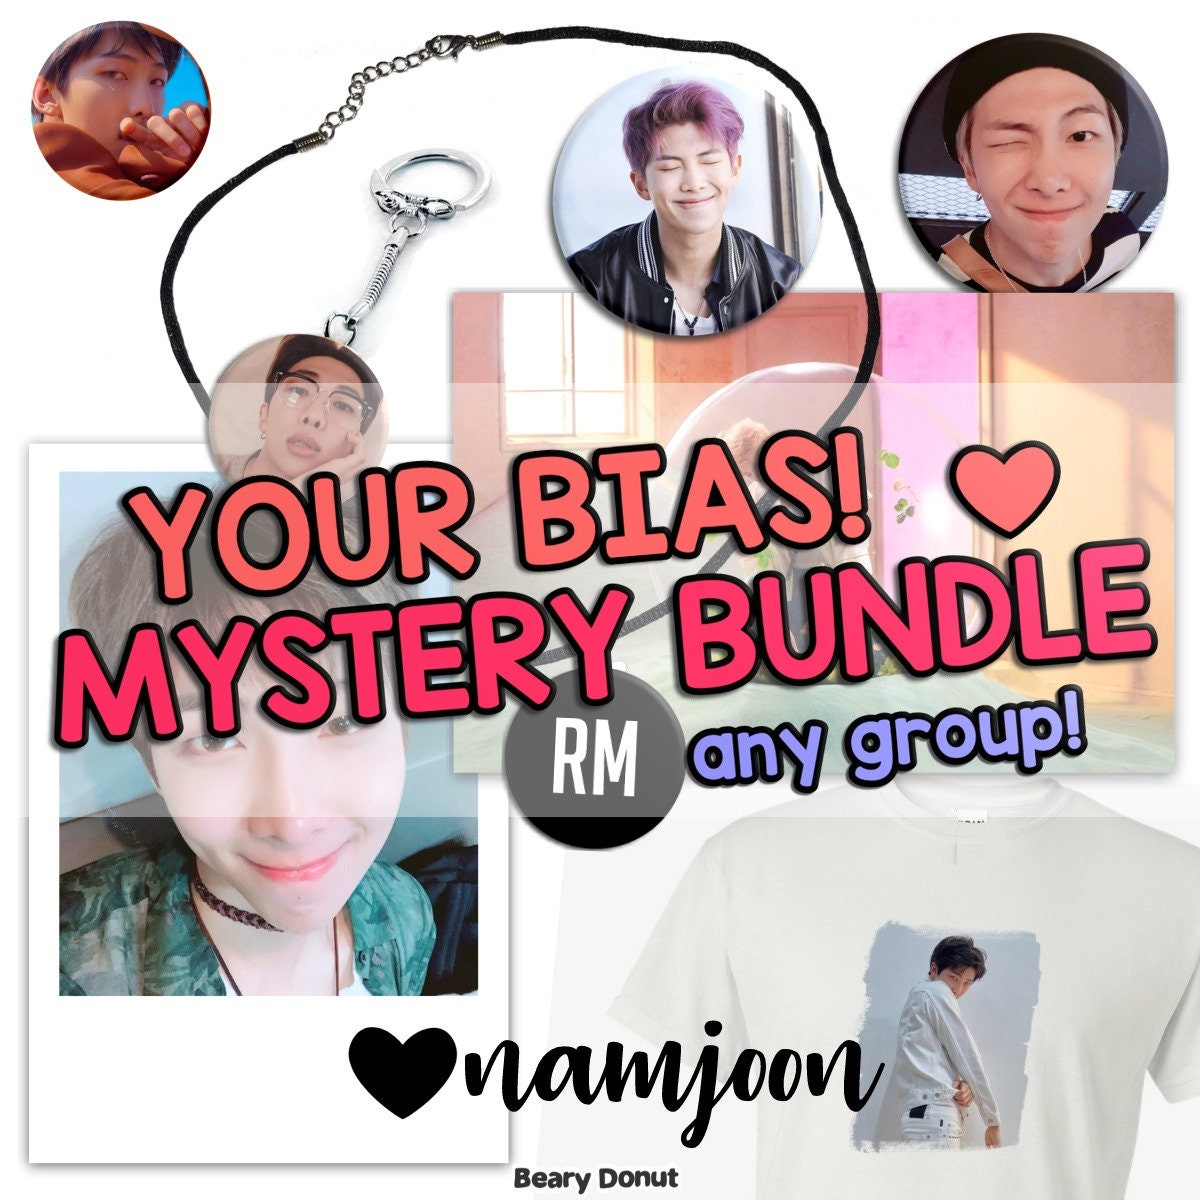 Ashe Momoland kpop your bias! mystery bundle any group box! pin buttons keychain magnet  necklace polaroid tshirt vinyl decal bts exo blackpink 17 twice